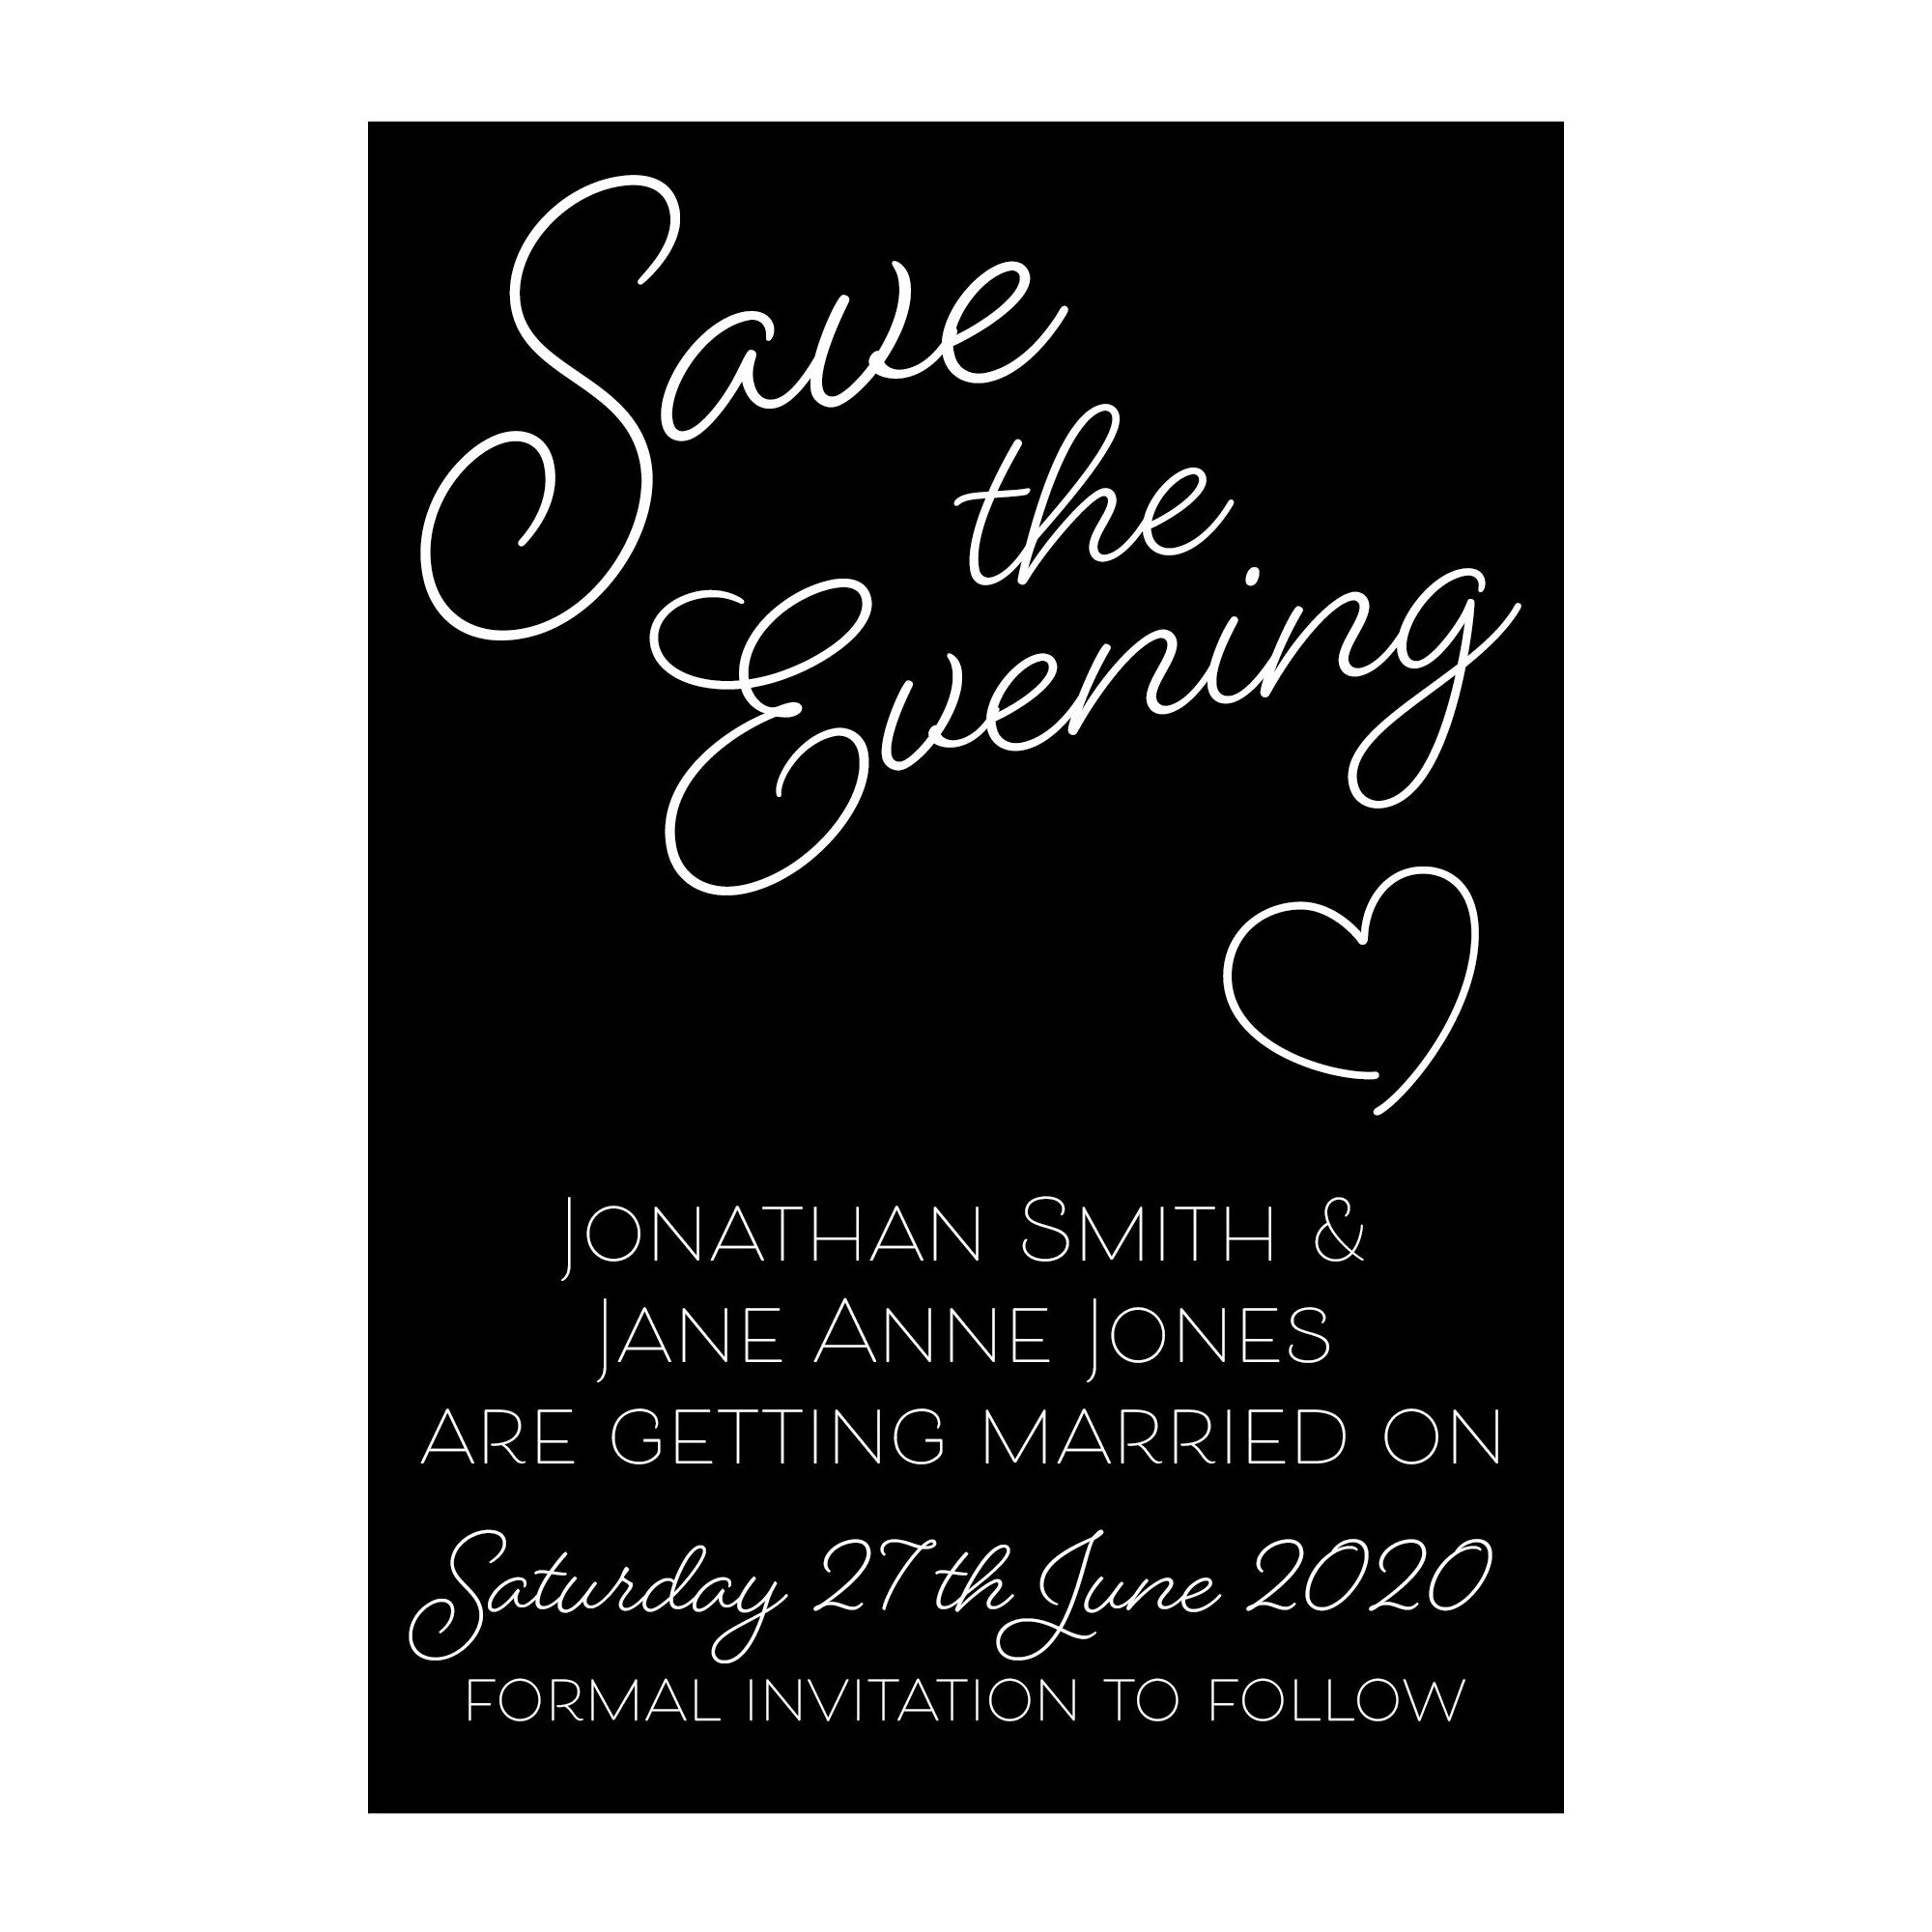 Black with White Ink Cute Heart Save the Evening Cards